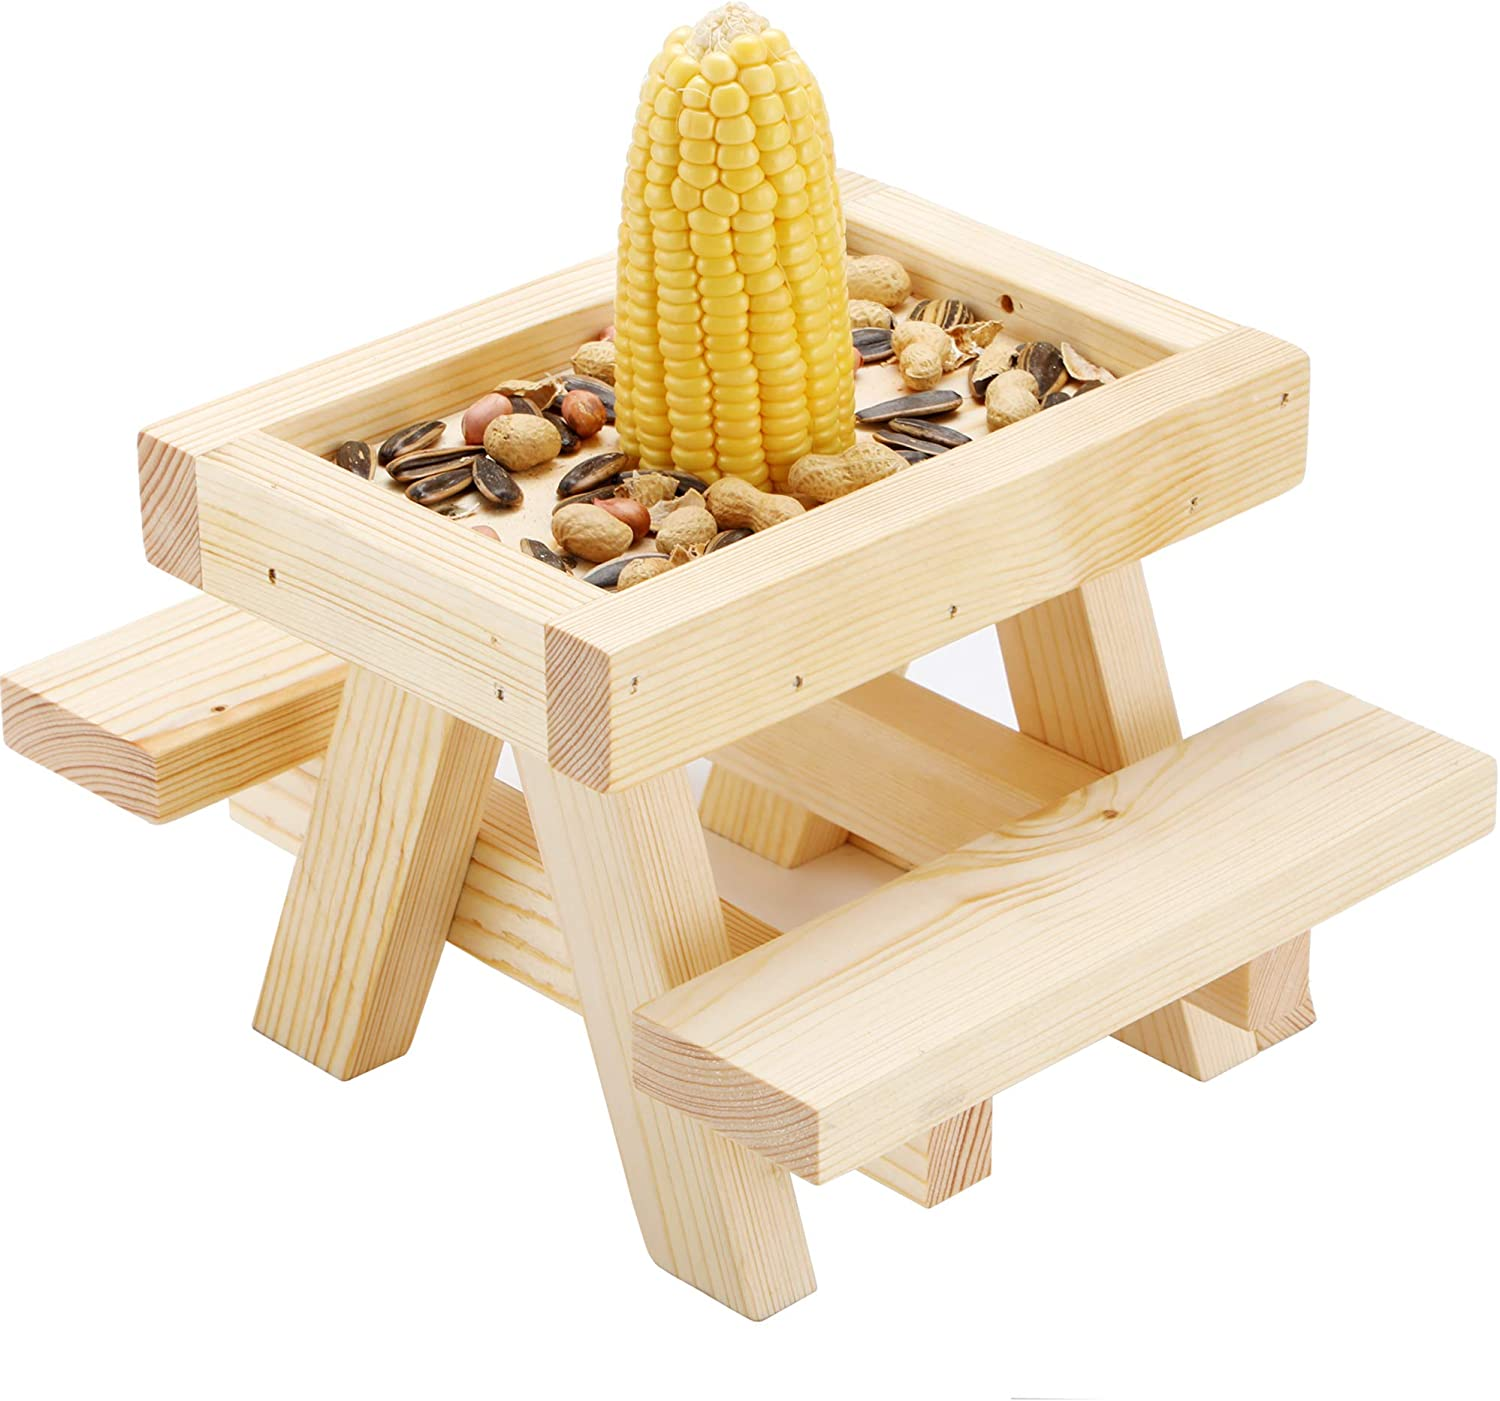 Squirrel Feeder for Outside - Mini Picnic Table Chair with Corn Cob Holder for Squirrels and Chipmunks - Wildlife Bird Animal Feeder Mounting Station